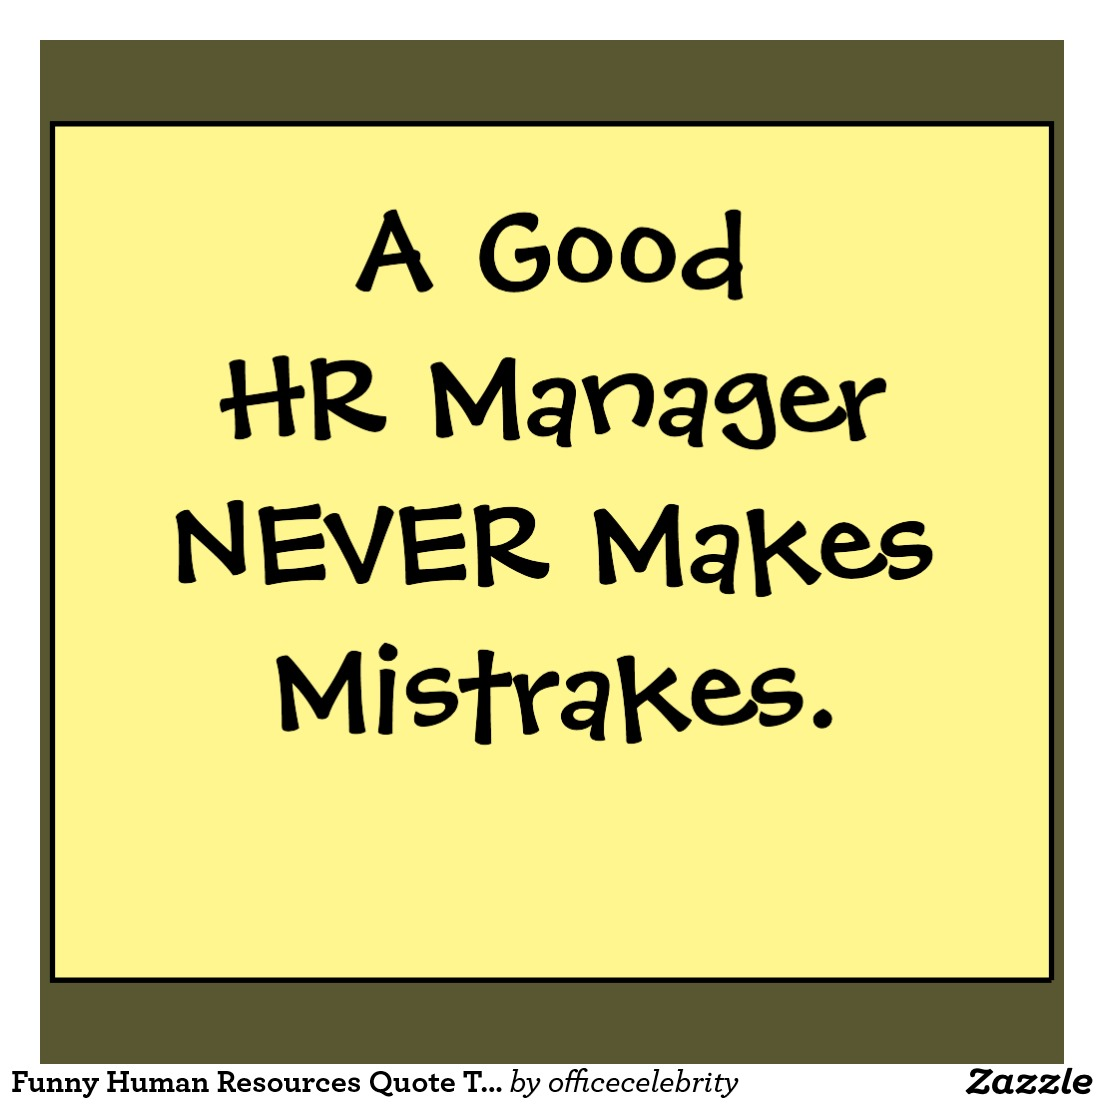 Human Resources Funny Quotes. QuotesGram Funny Quotes